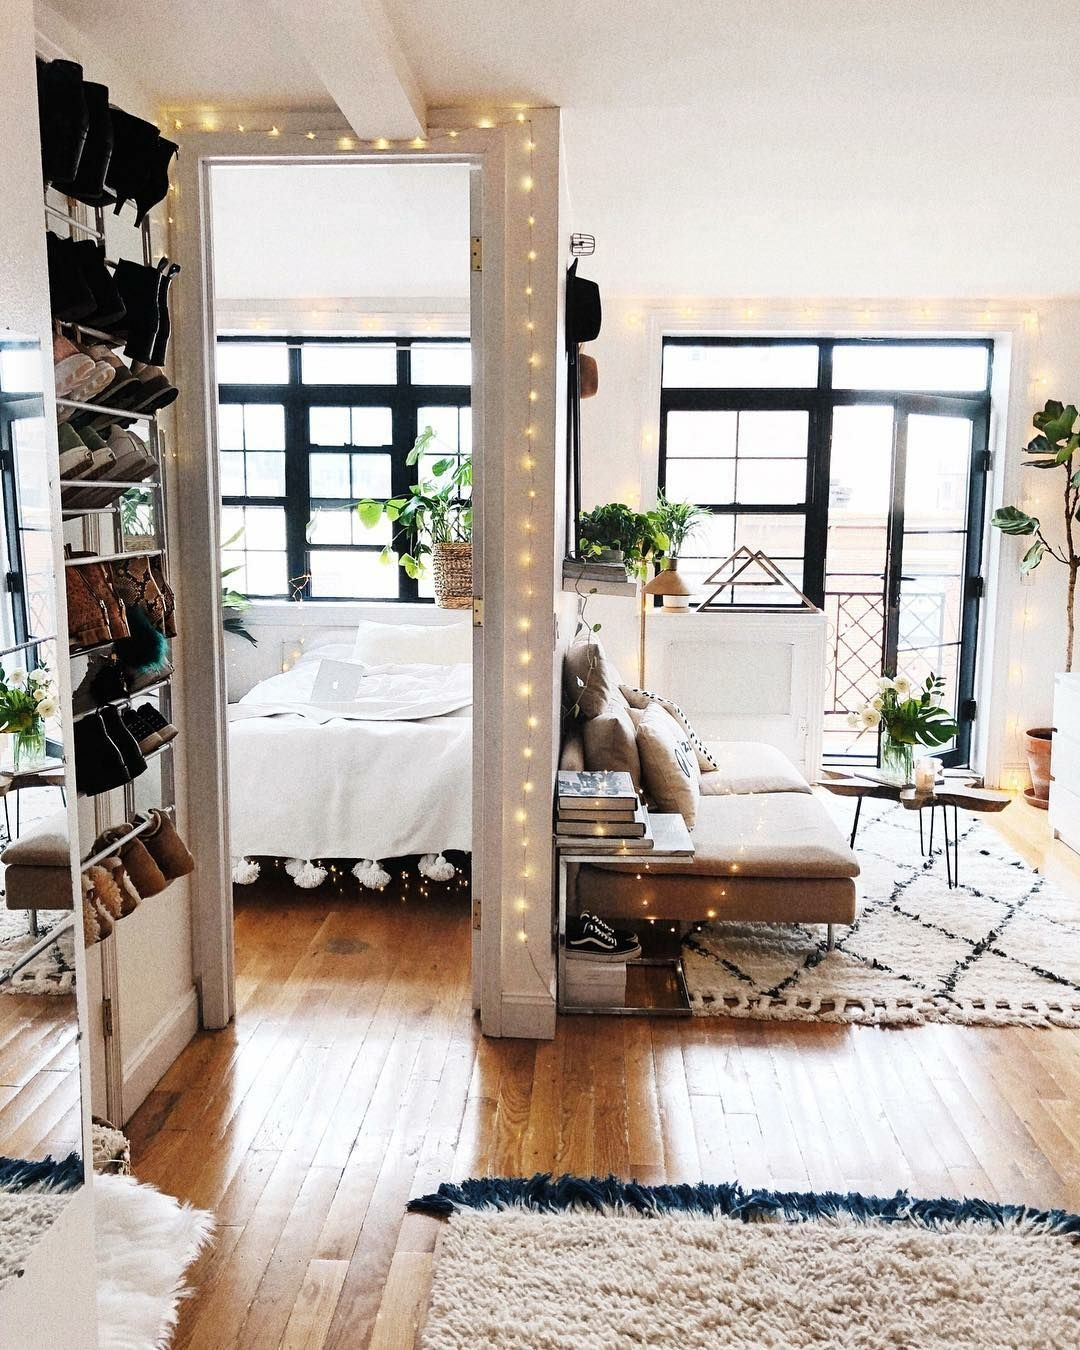 It girl decor inspiration  apartamento mais fofo que voce vai conferir hoje sala  quarto escandinavo boho tapete de losango marroquino also bohemian style home ideas pinterest rh